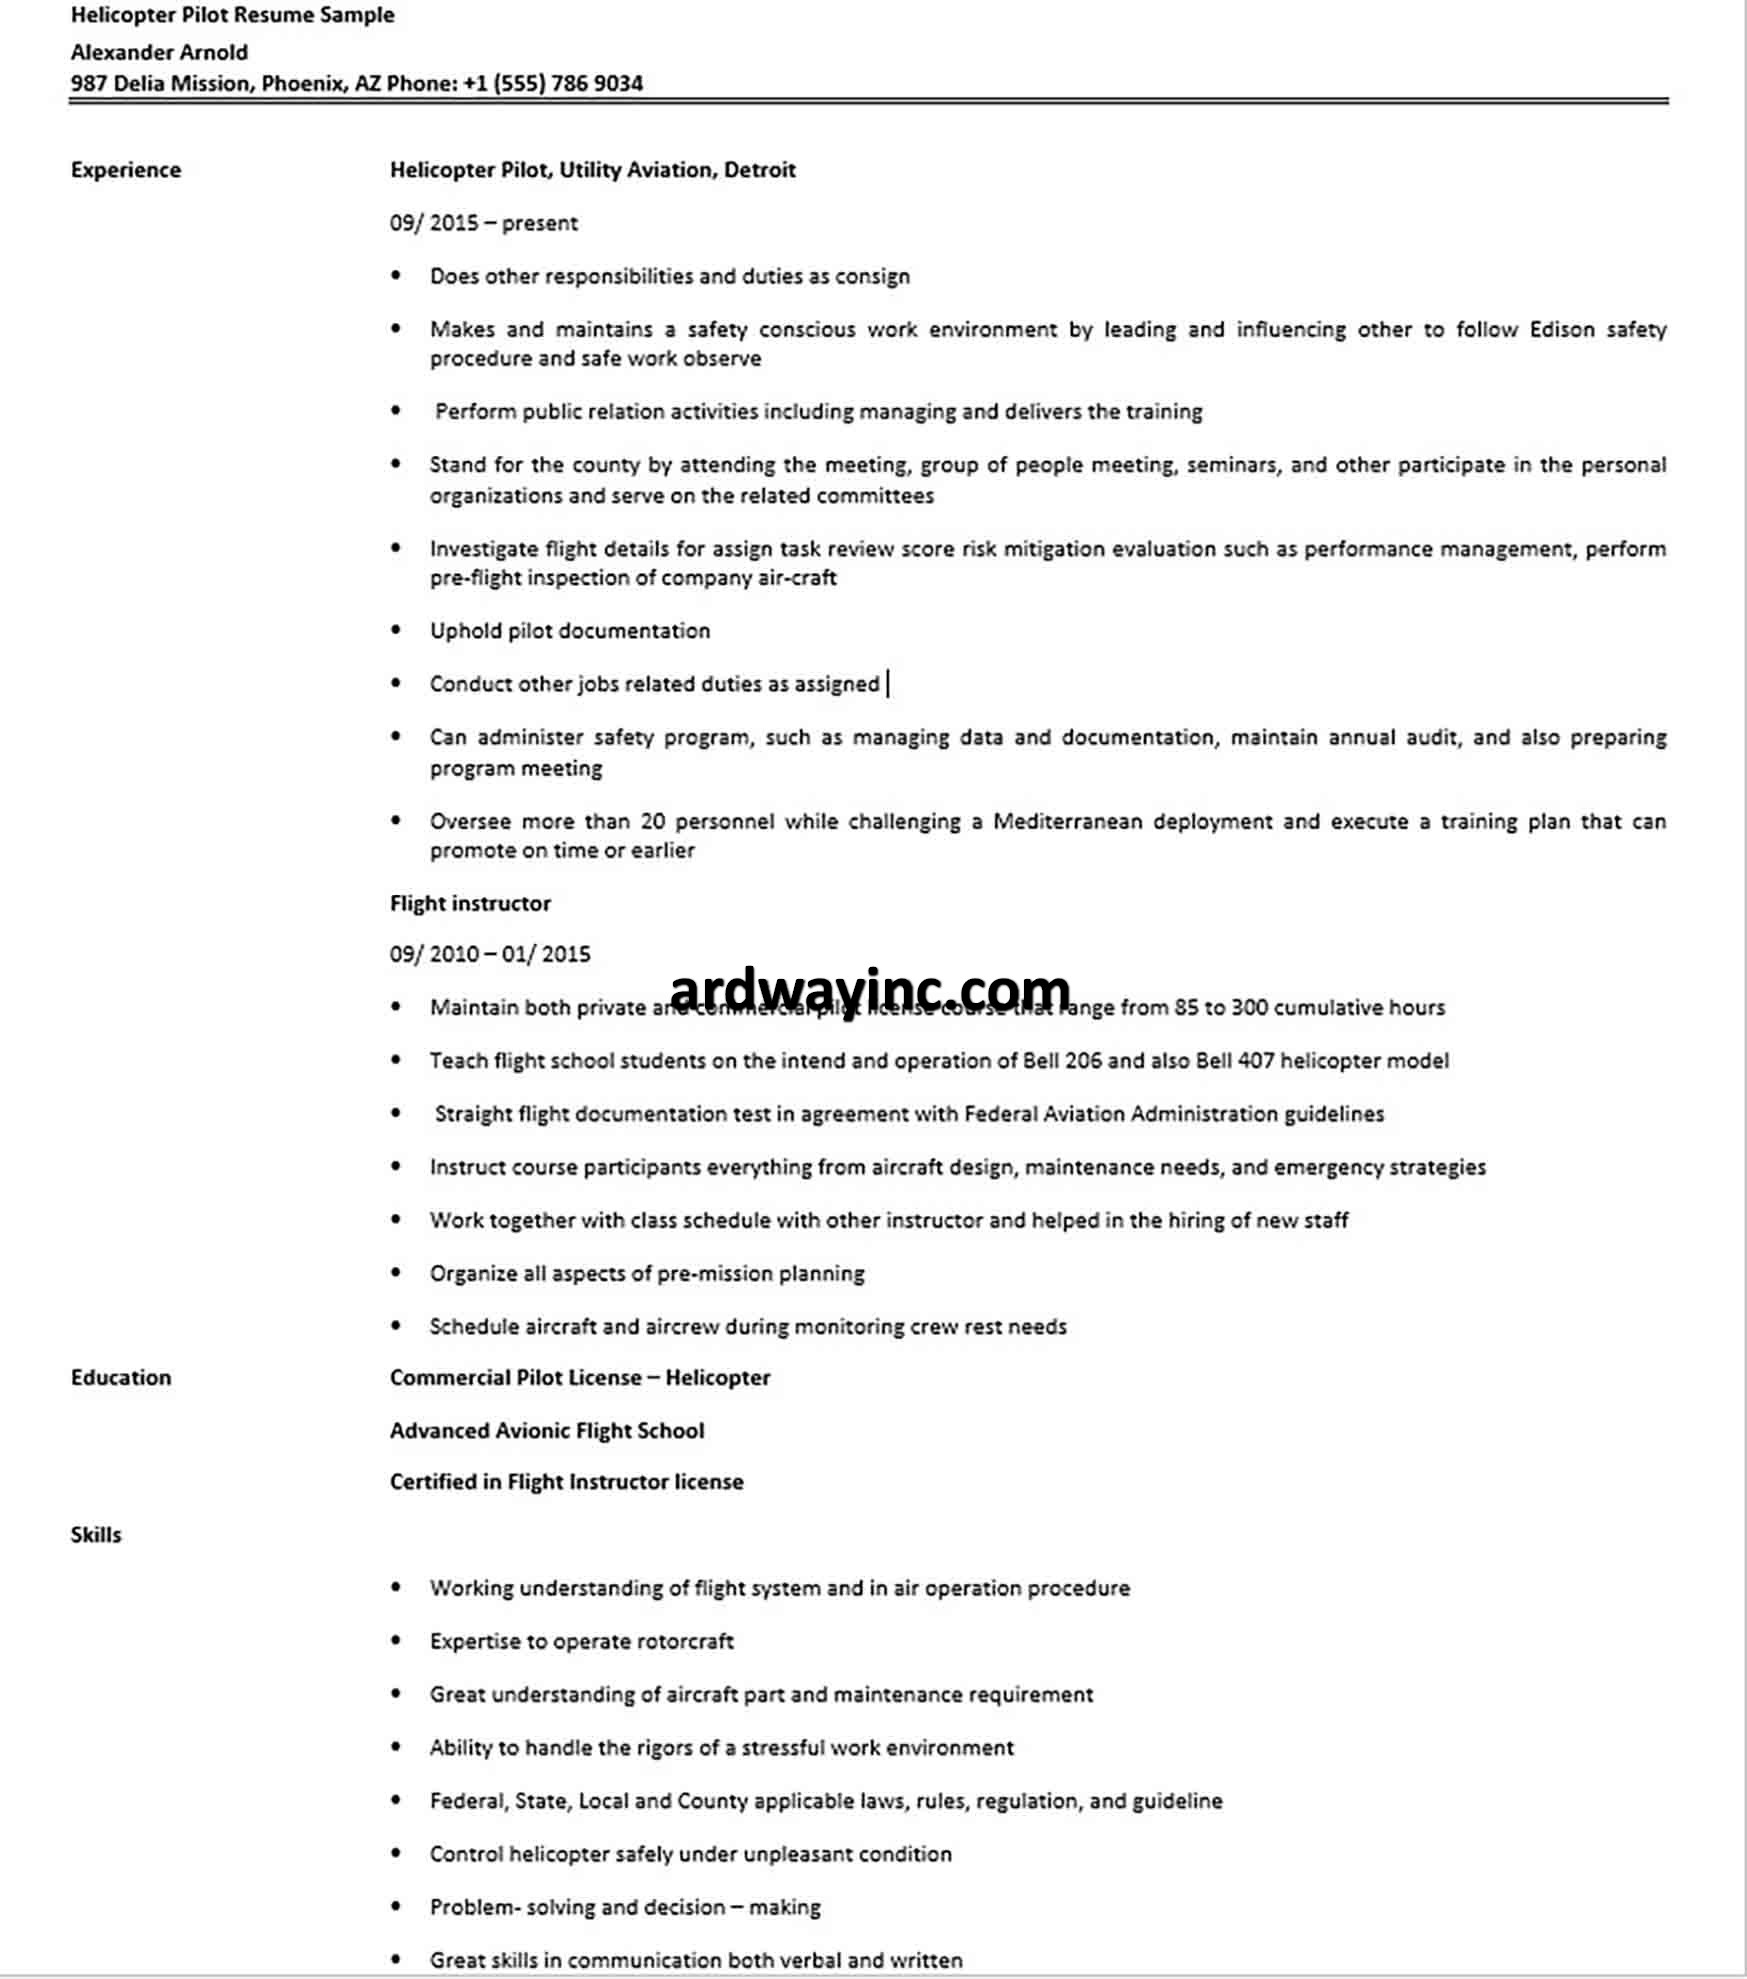 Helicopter Pilot Resume Sample